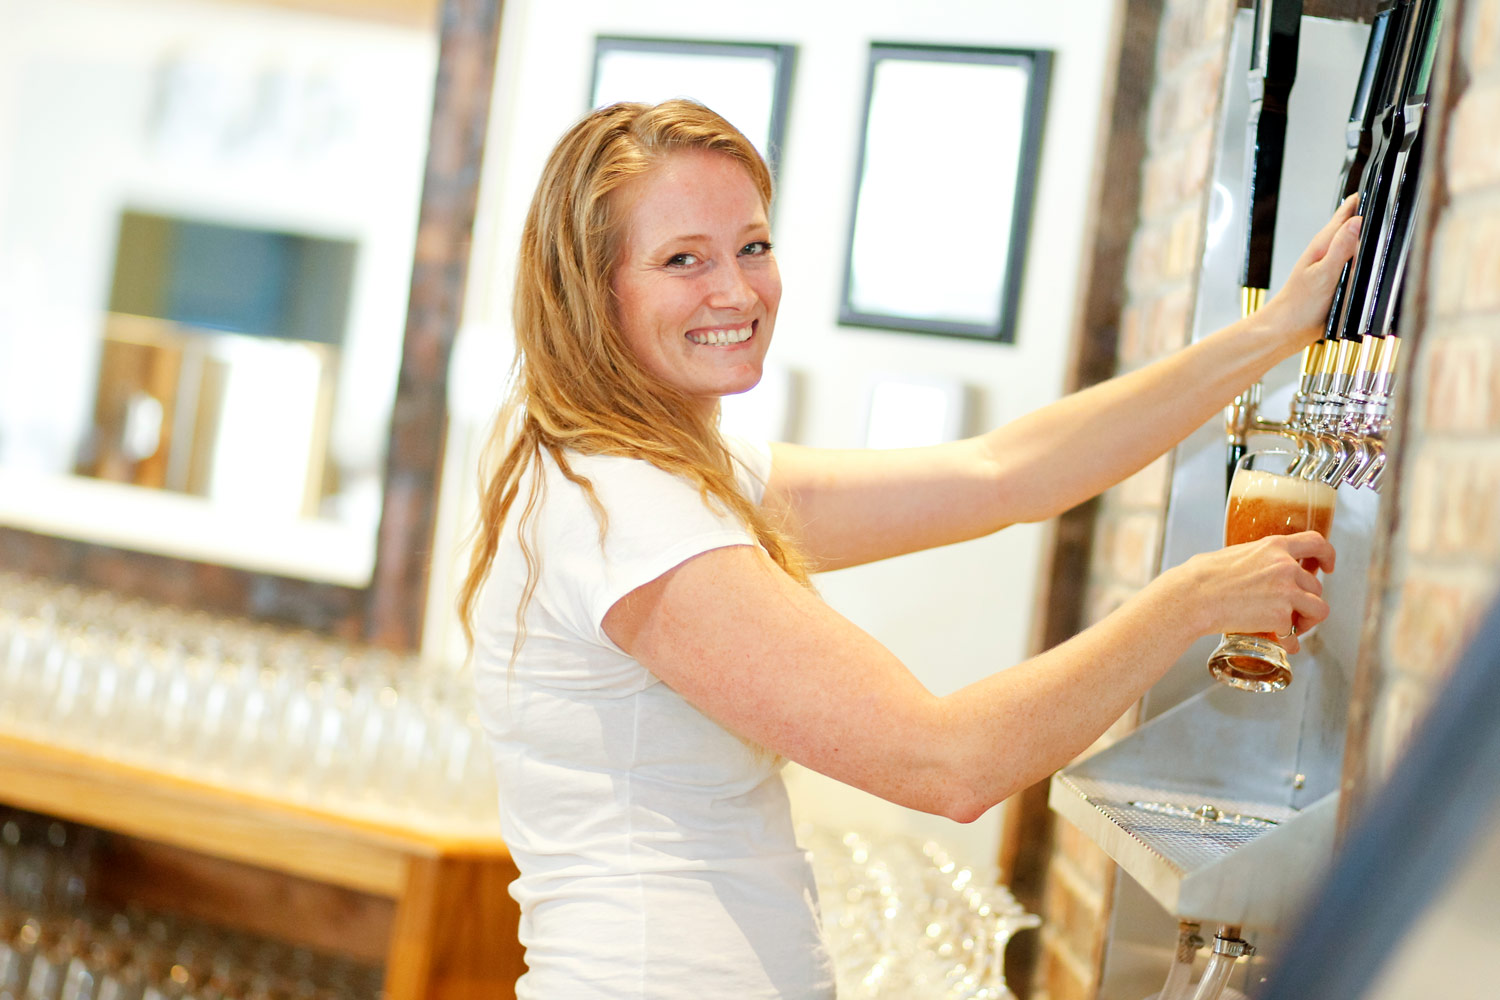 crystal-lake-brewing-marketing-promotional-photography-ruthie-hauge-brewery-madison-wi15.jpg